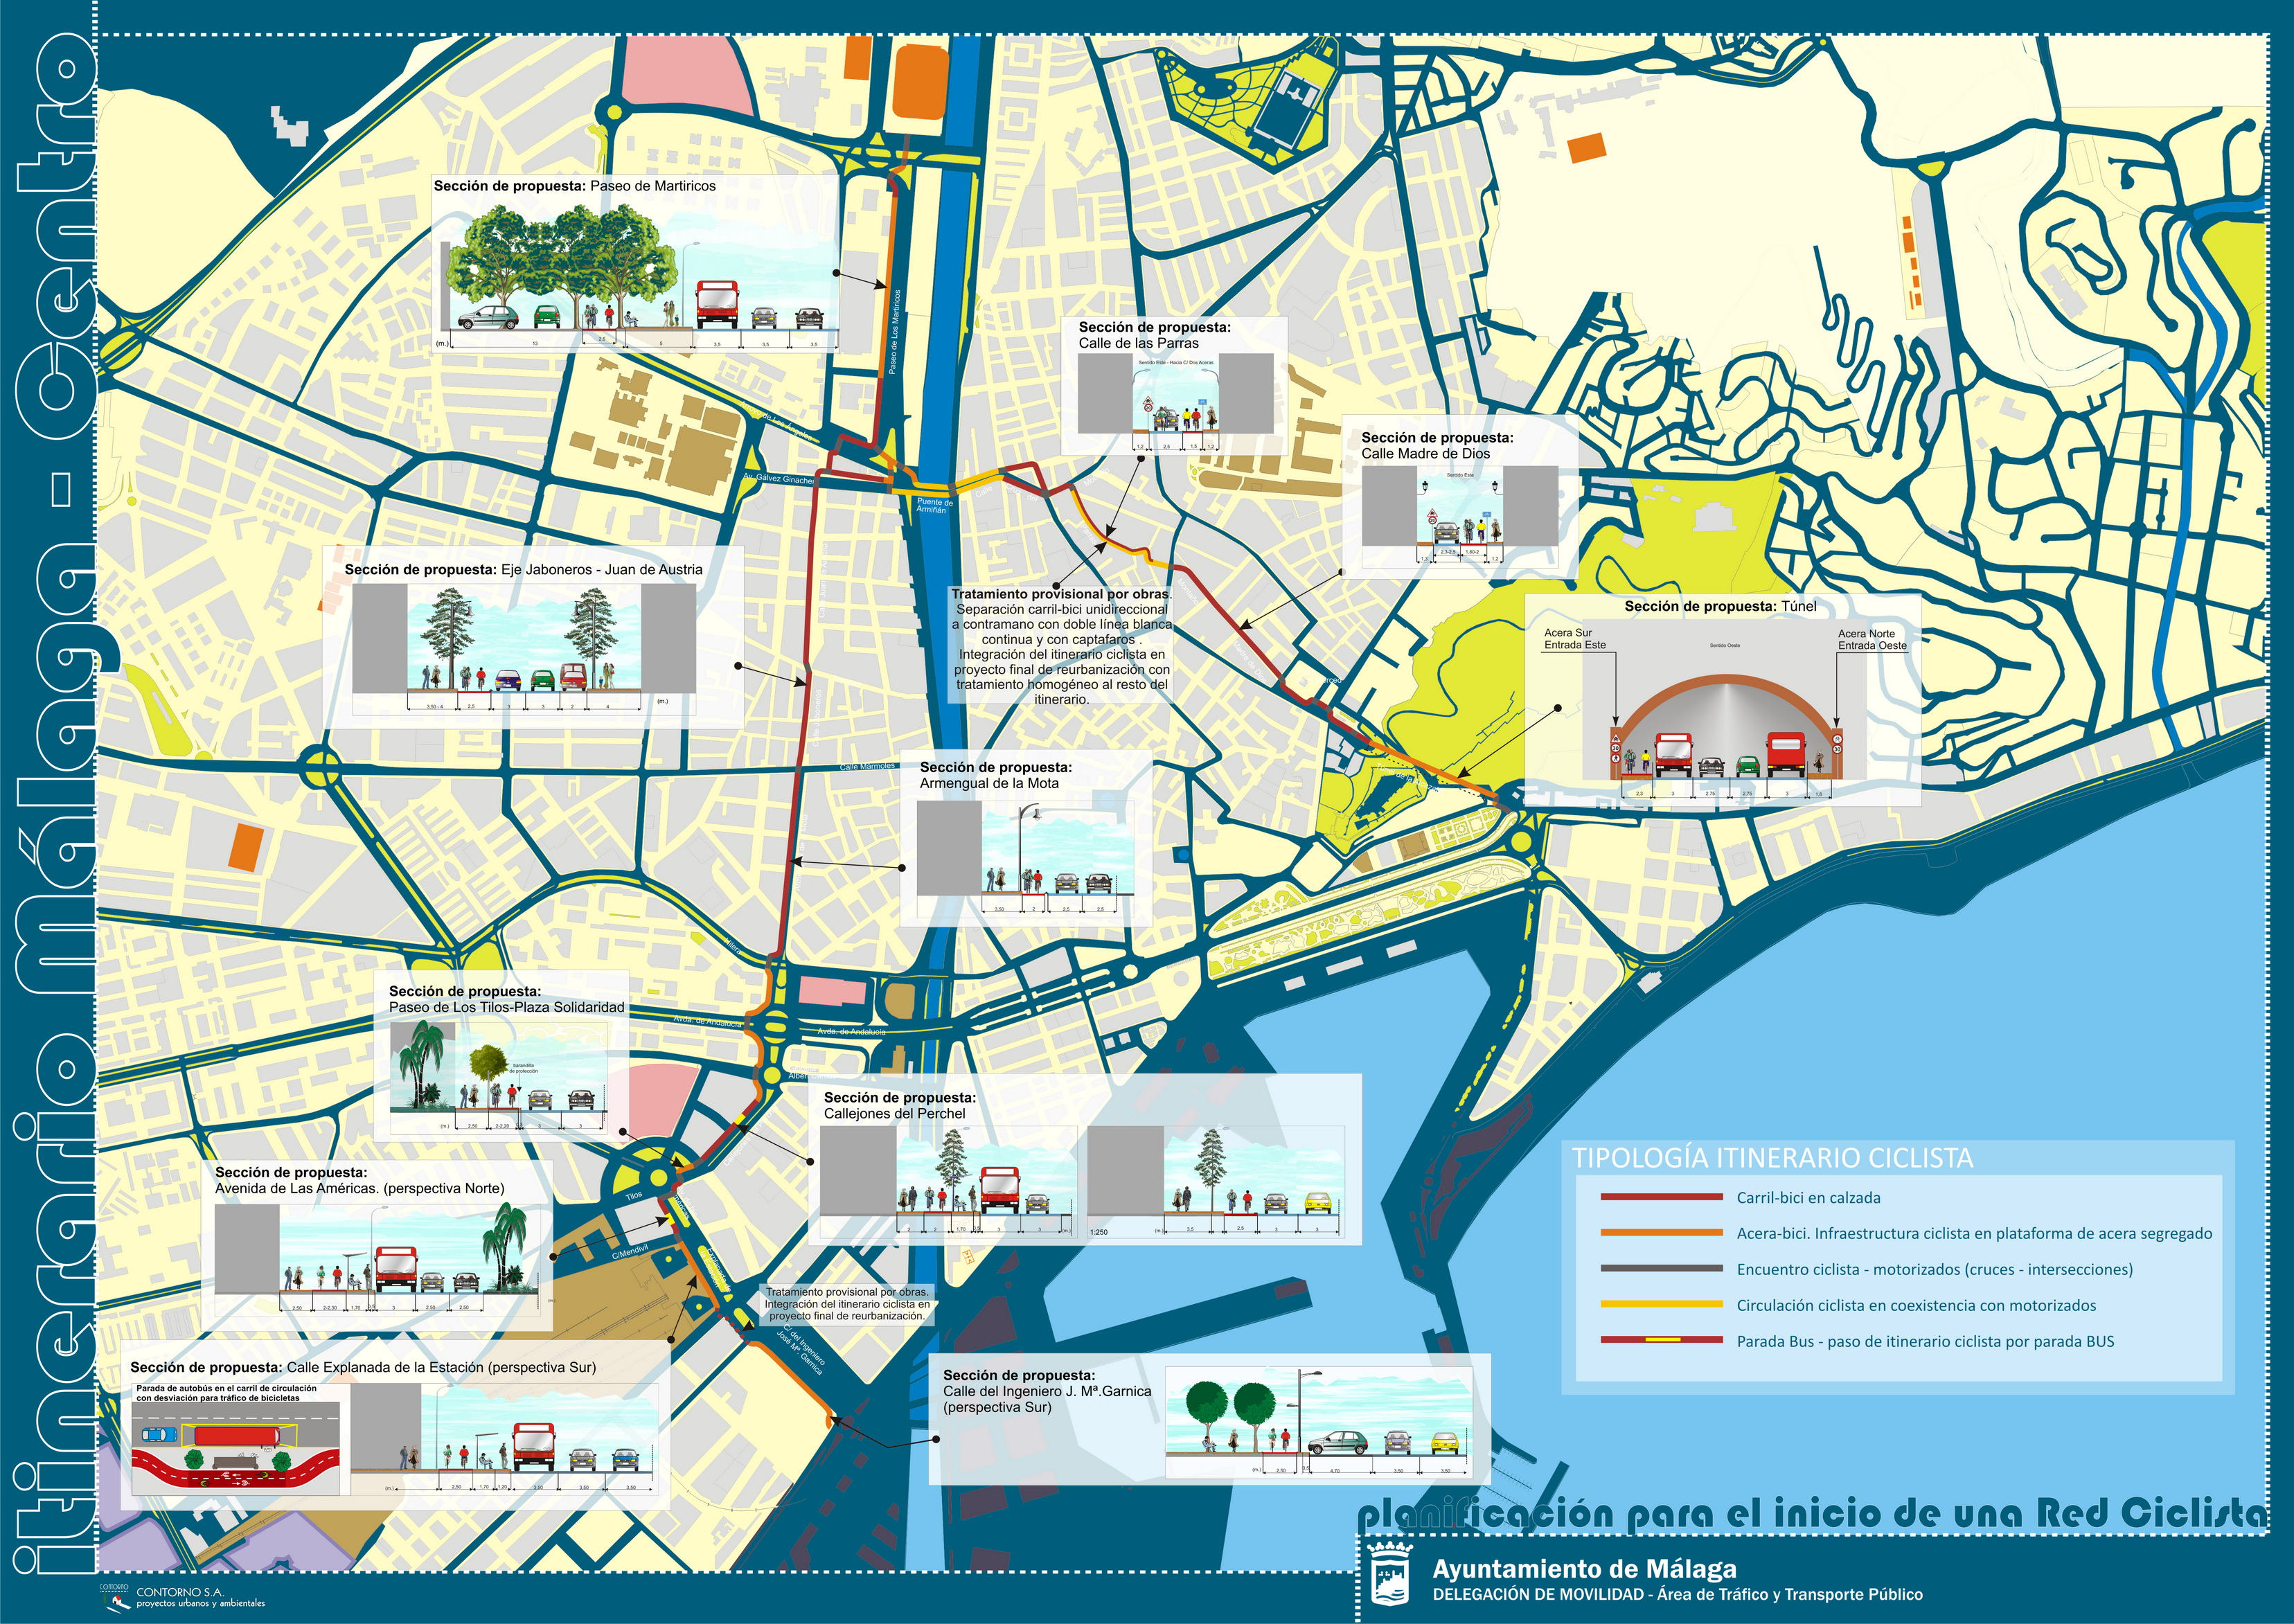 Maps of Cycle routes of Malaga Historical Centre 2011 - mapa ... Map Of Malaga Centre on map of cudillero, map of getxo, map of puerto rico gran canaria, map of bizkaia, map of penedes, map of macapa, map of monchengladbach, map of sagunto, map of graysville, map of tampere, map of mount ephraim, map of venice marco polo, map of marsala, map of iruna, map of italica, map of costa de la luz, map of soria, map of andalucia, map of isla margarita, map of mutare,